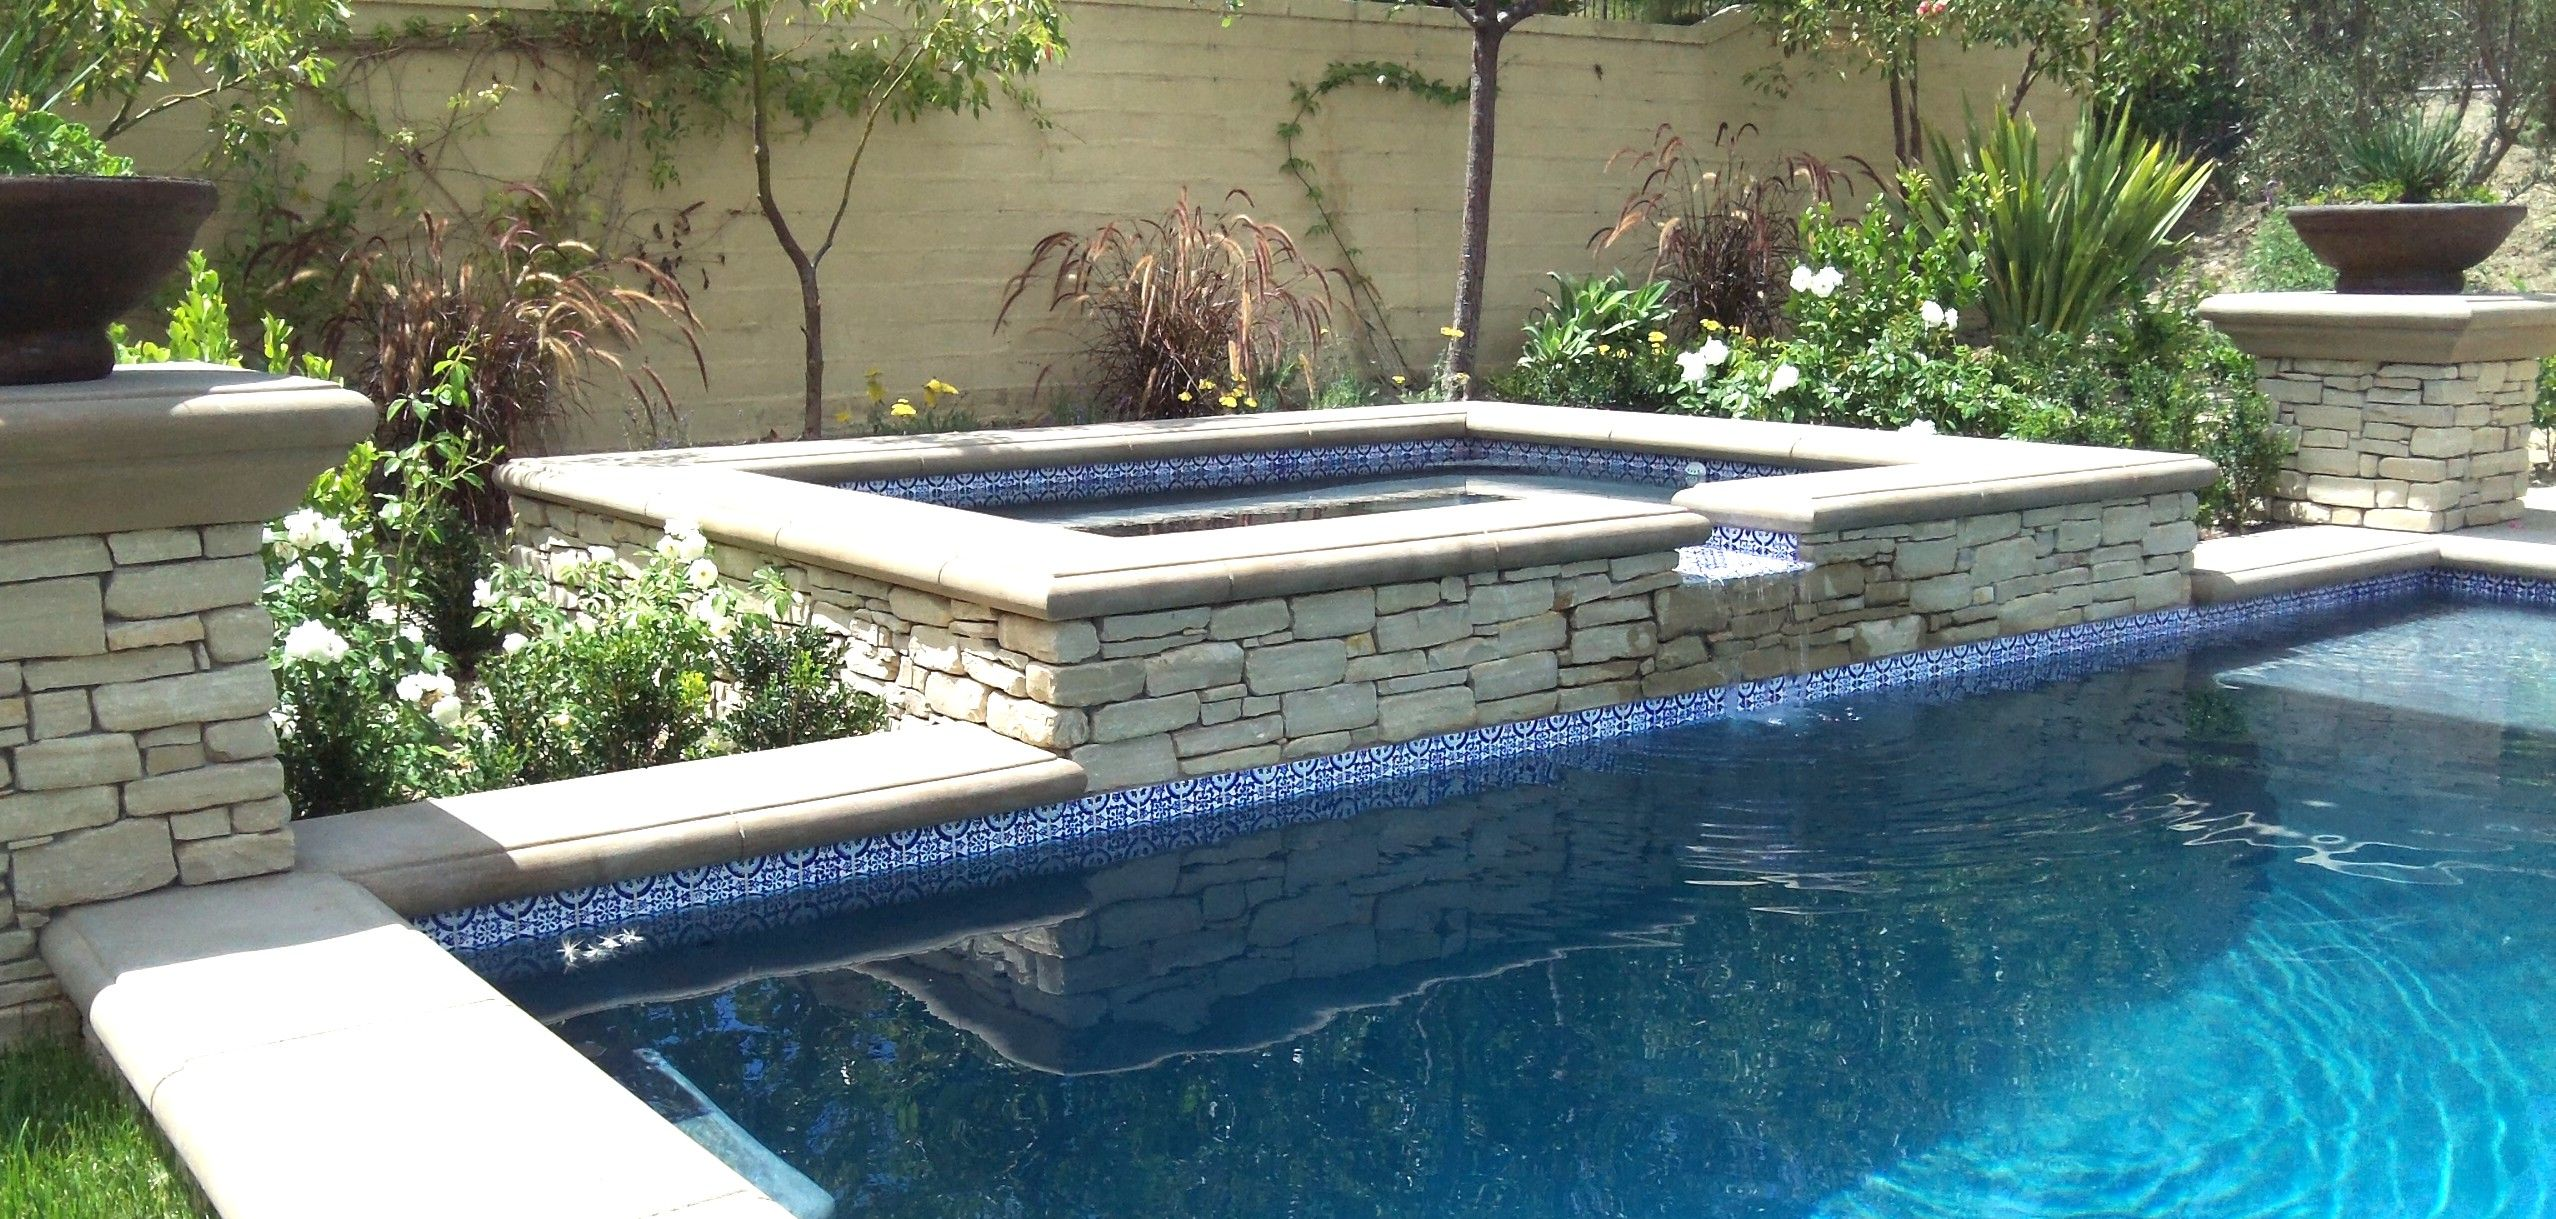 Pool tile designs pool water fountain design ideas small for Pool garden plans